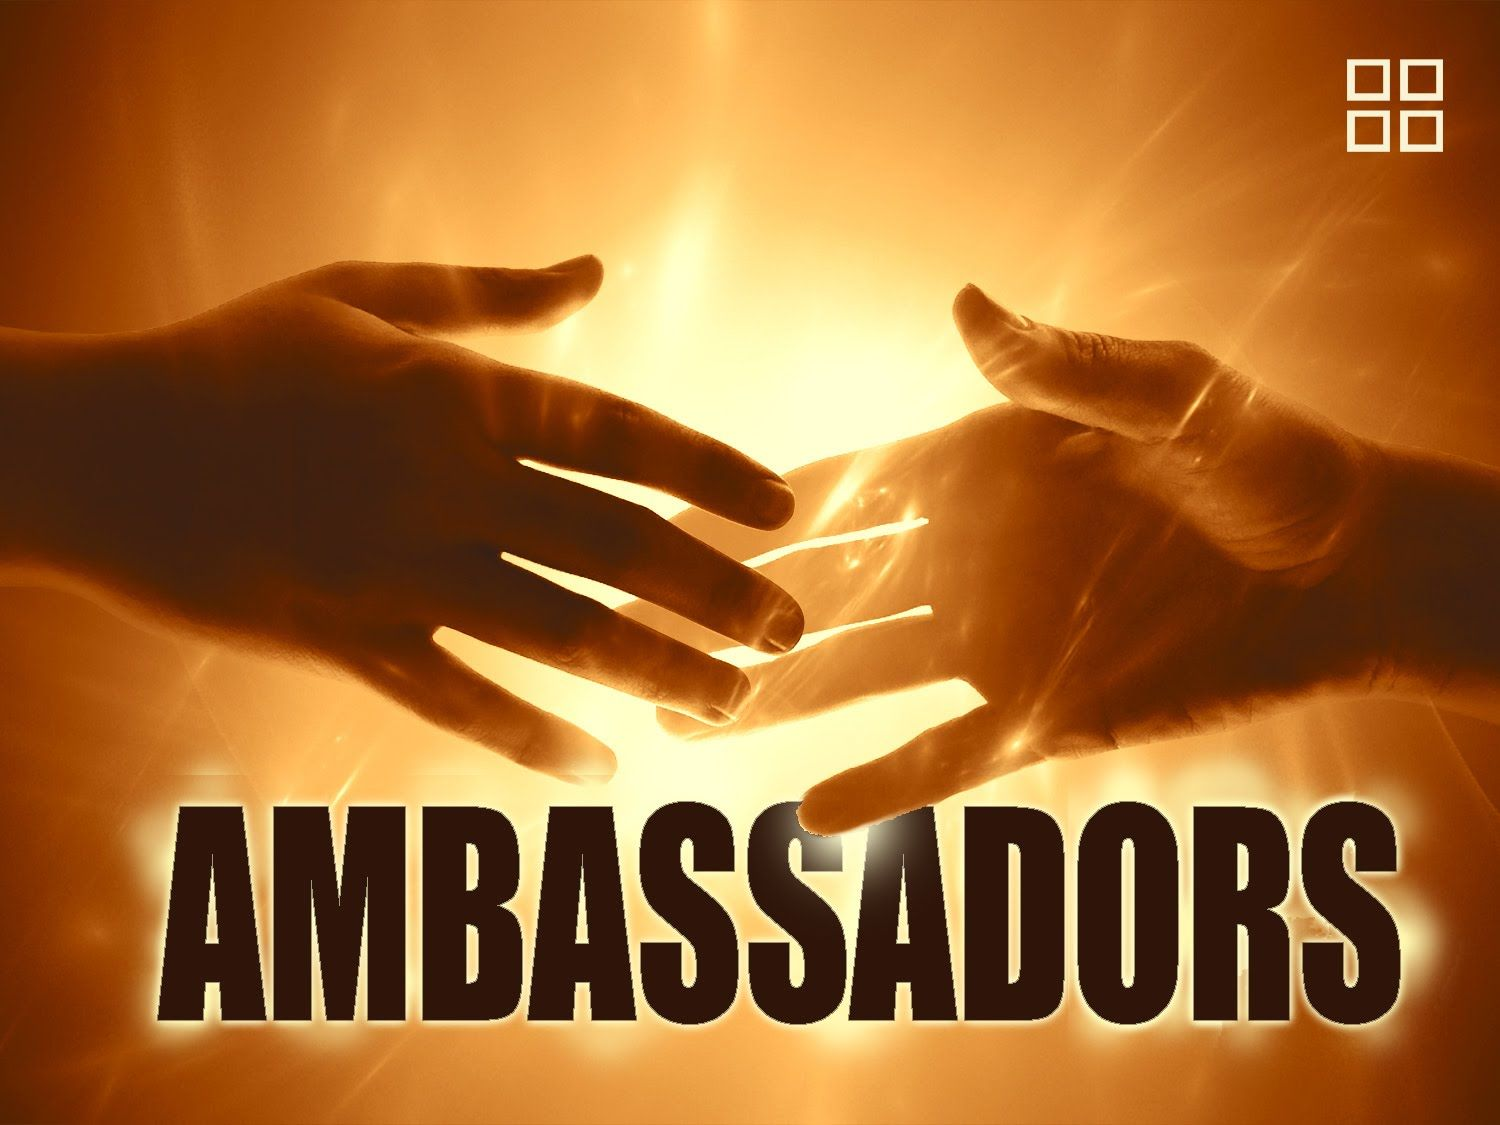 """Ambassadors from other countries are afforded Diplomatic Immunity when traveling outside or their own country. Likewise, we are Ambassadors for Christ and are on a missions trip in a foreign land. Watch the video """"Becoming an Ambassador for Christ"""". http://youtu.be/mMVq-Cl2LsE"""